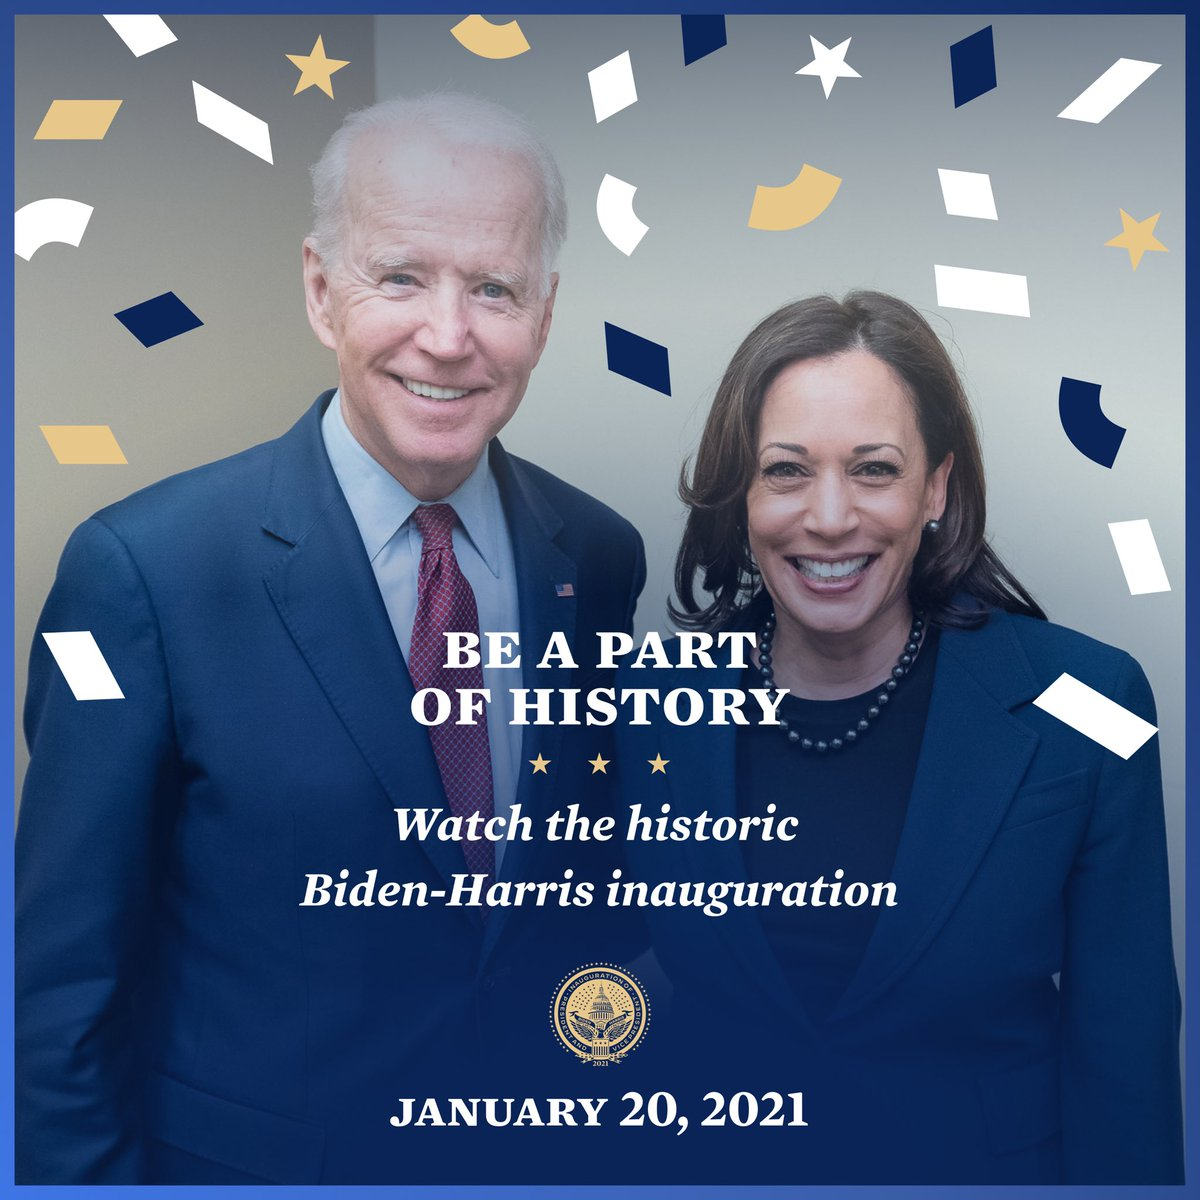 @BidenInaugural I could not be happier today for our country & world as our new President @JoeBiden & Vice President @KamalaHarris are inaugurated! Congratulations to them & also to our First Lady @DrBiden & Second Gentleman @DouglasEmhoff.  🎉 U.S. democracy rises again this #Inauguration2021!